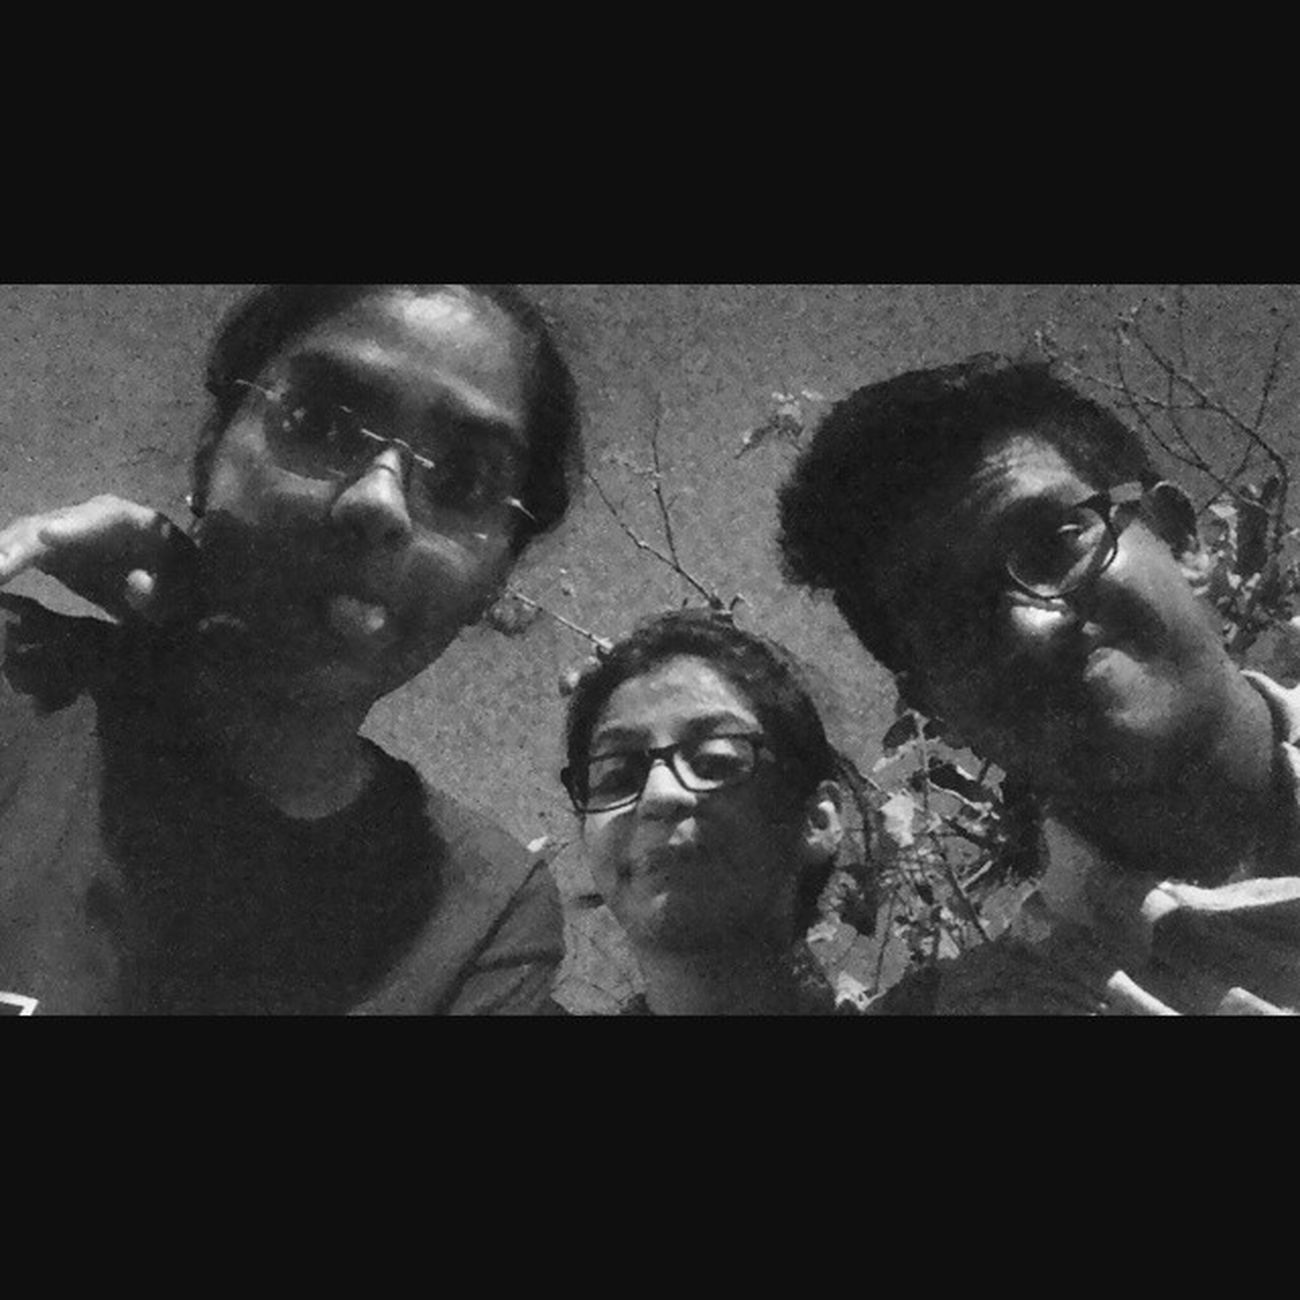 Weirdos Weirdfaces Weirdpeople Bestpeople